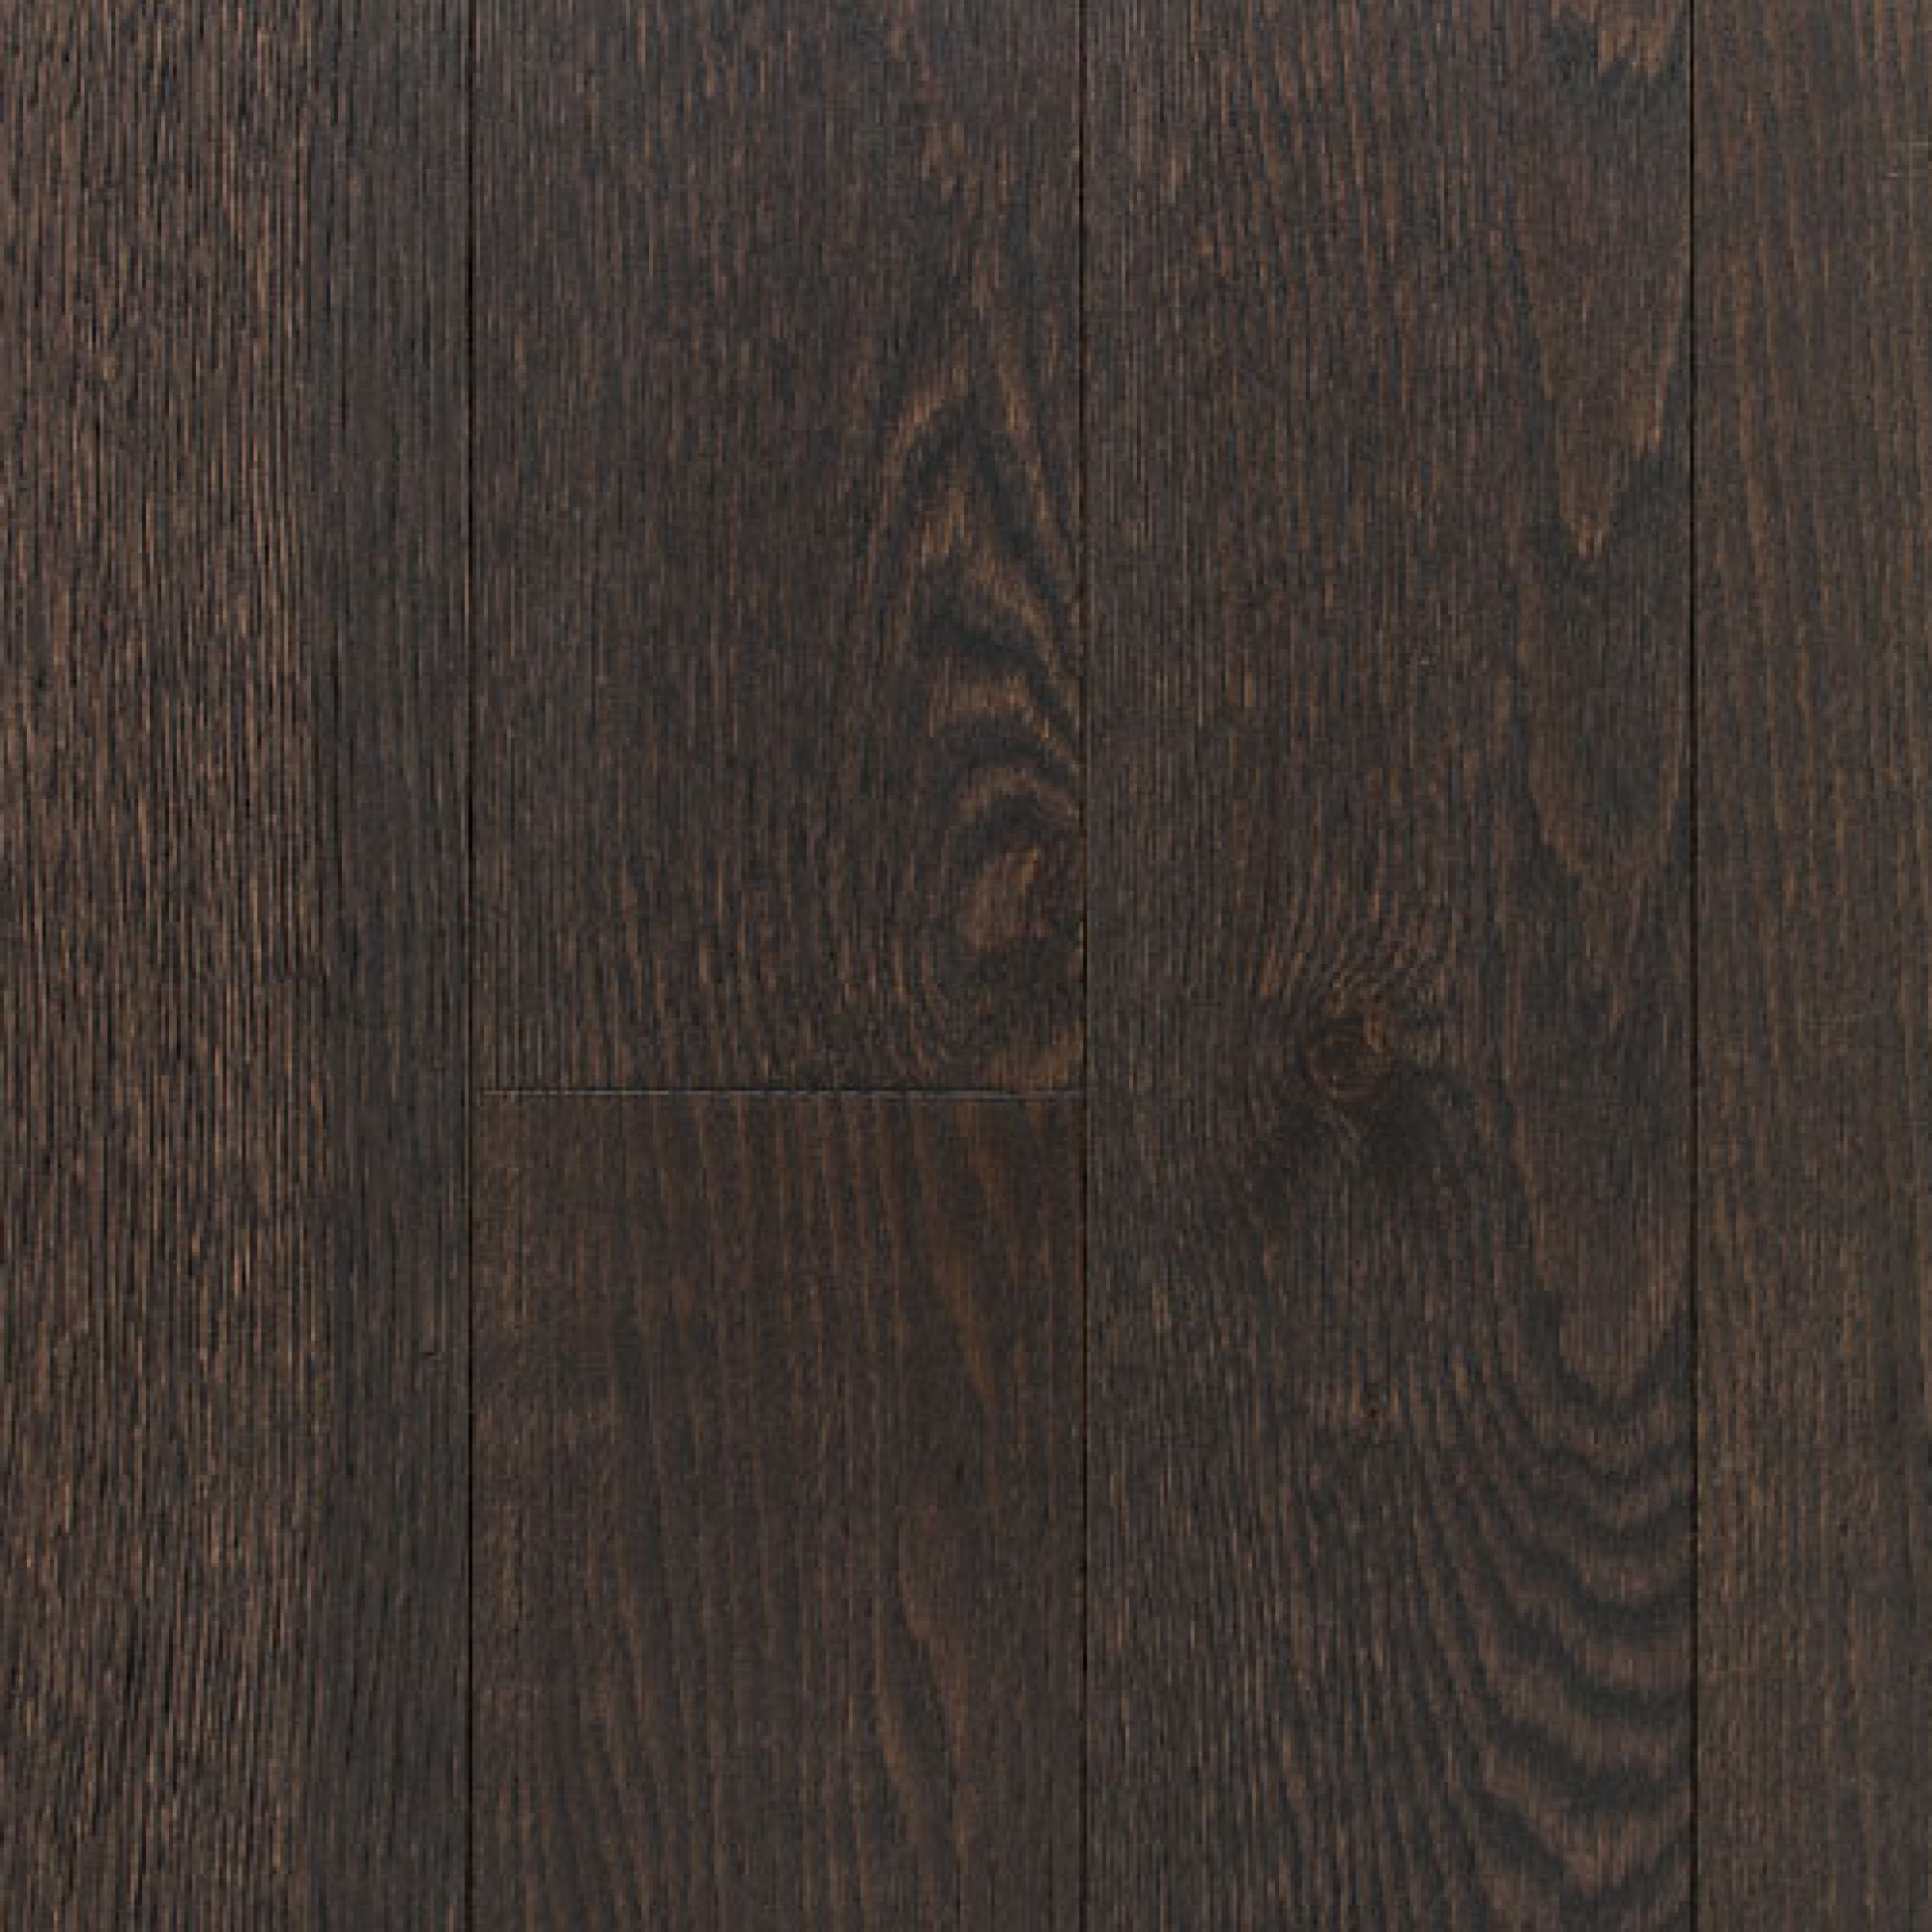 white oak hardwood flooring for sale of smooth white oak baroque vintage hardwood flooring and within floor ambiance